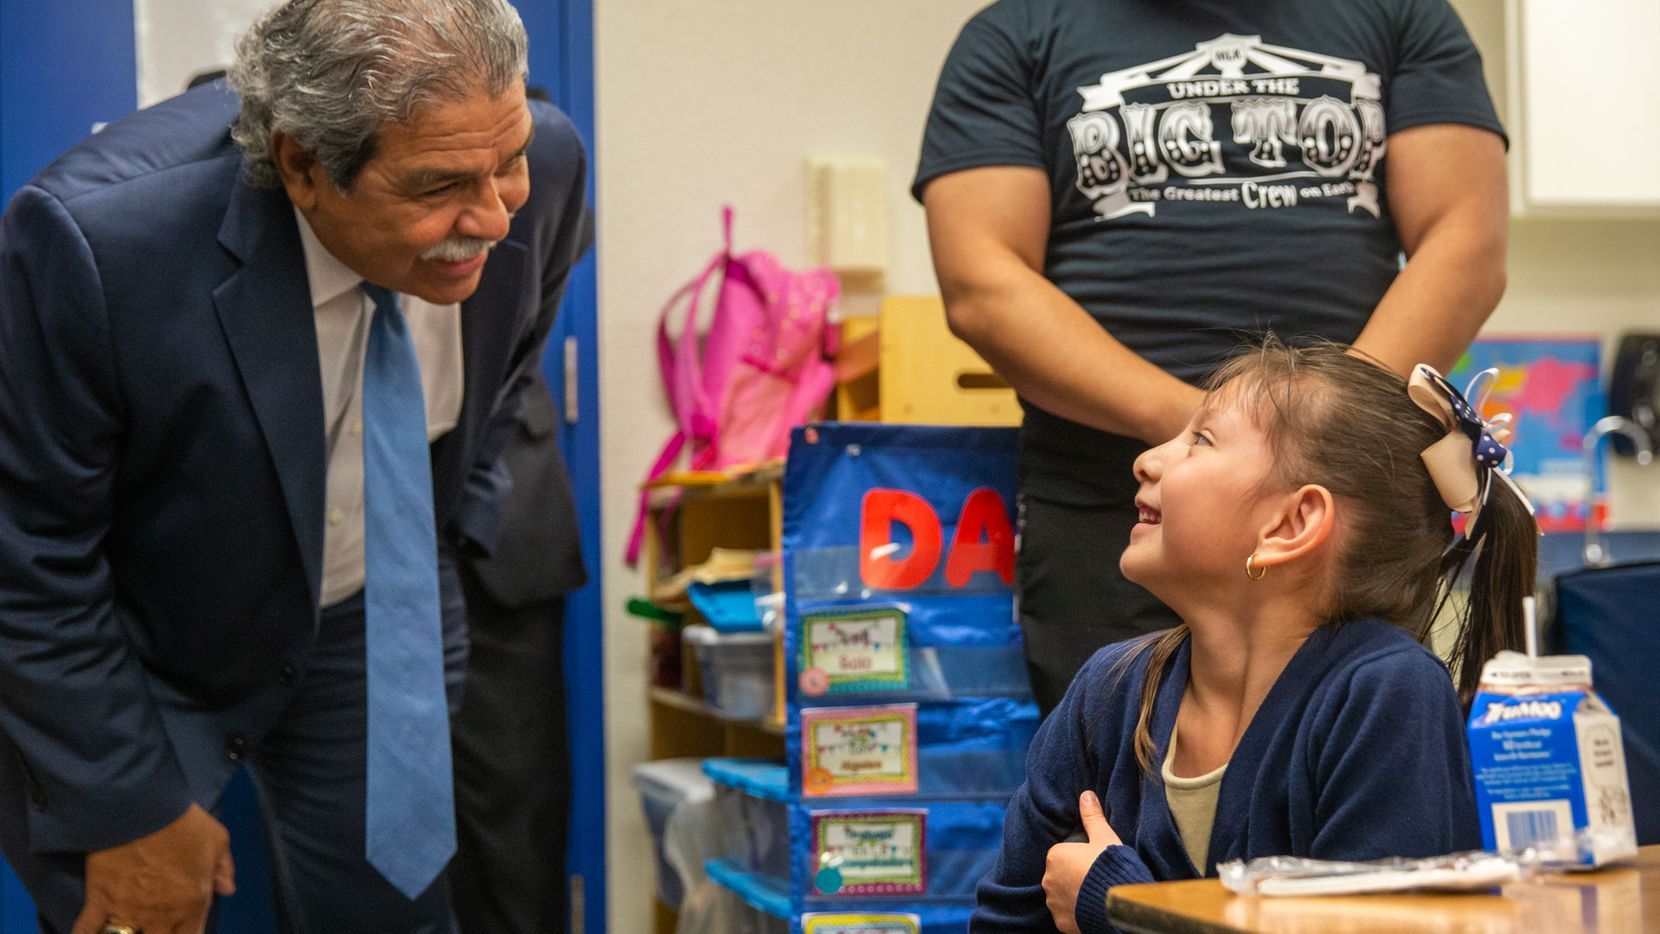 Dallas ISD Superintendent Michael Hinojosa (left) speaks with Juliana Hernandez, 5 (right), at the Martin Luther King Jr. Learning Center in Dallas for the first day of school on Monday, Aug. 19, 2019.